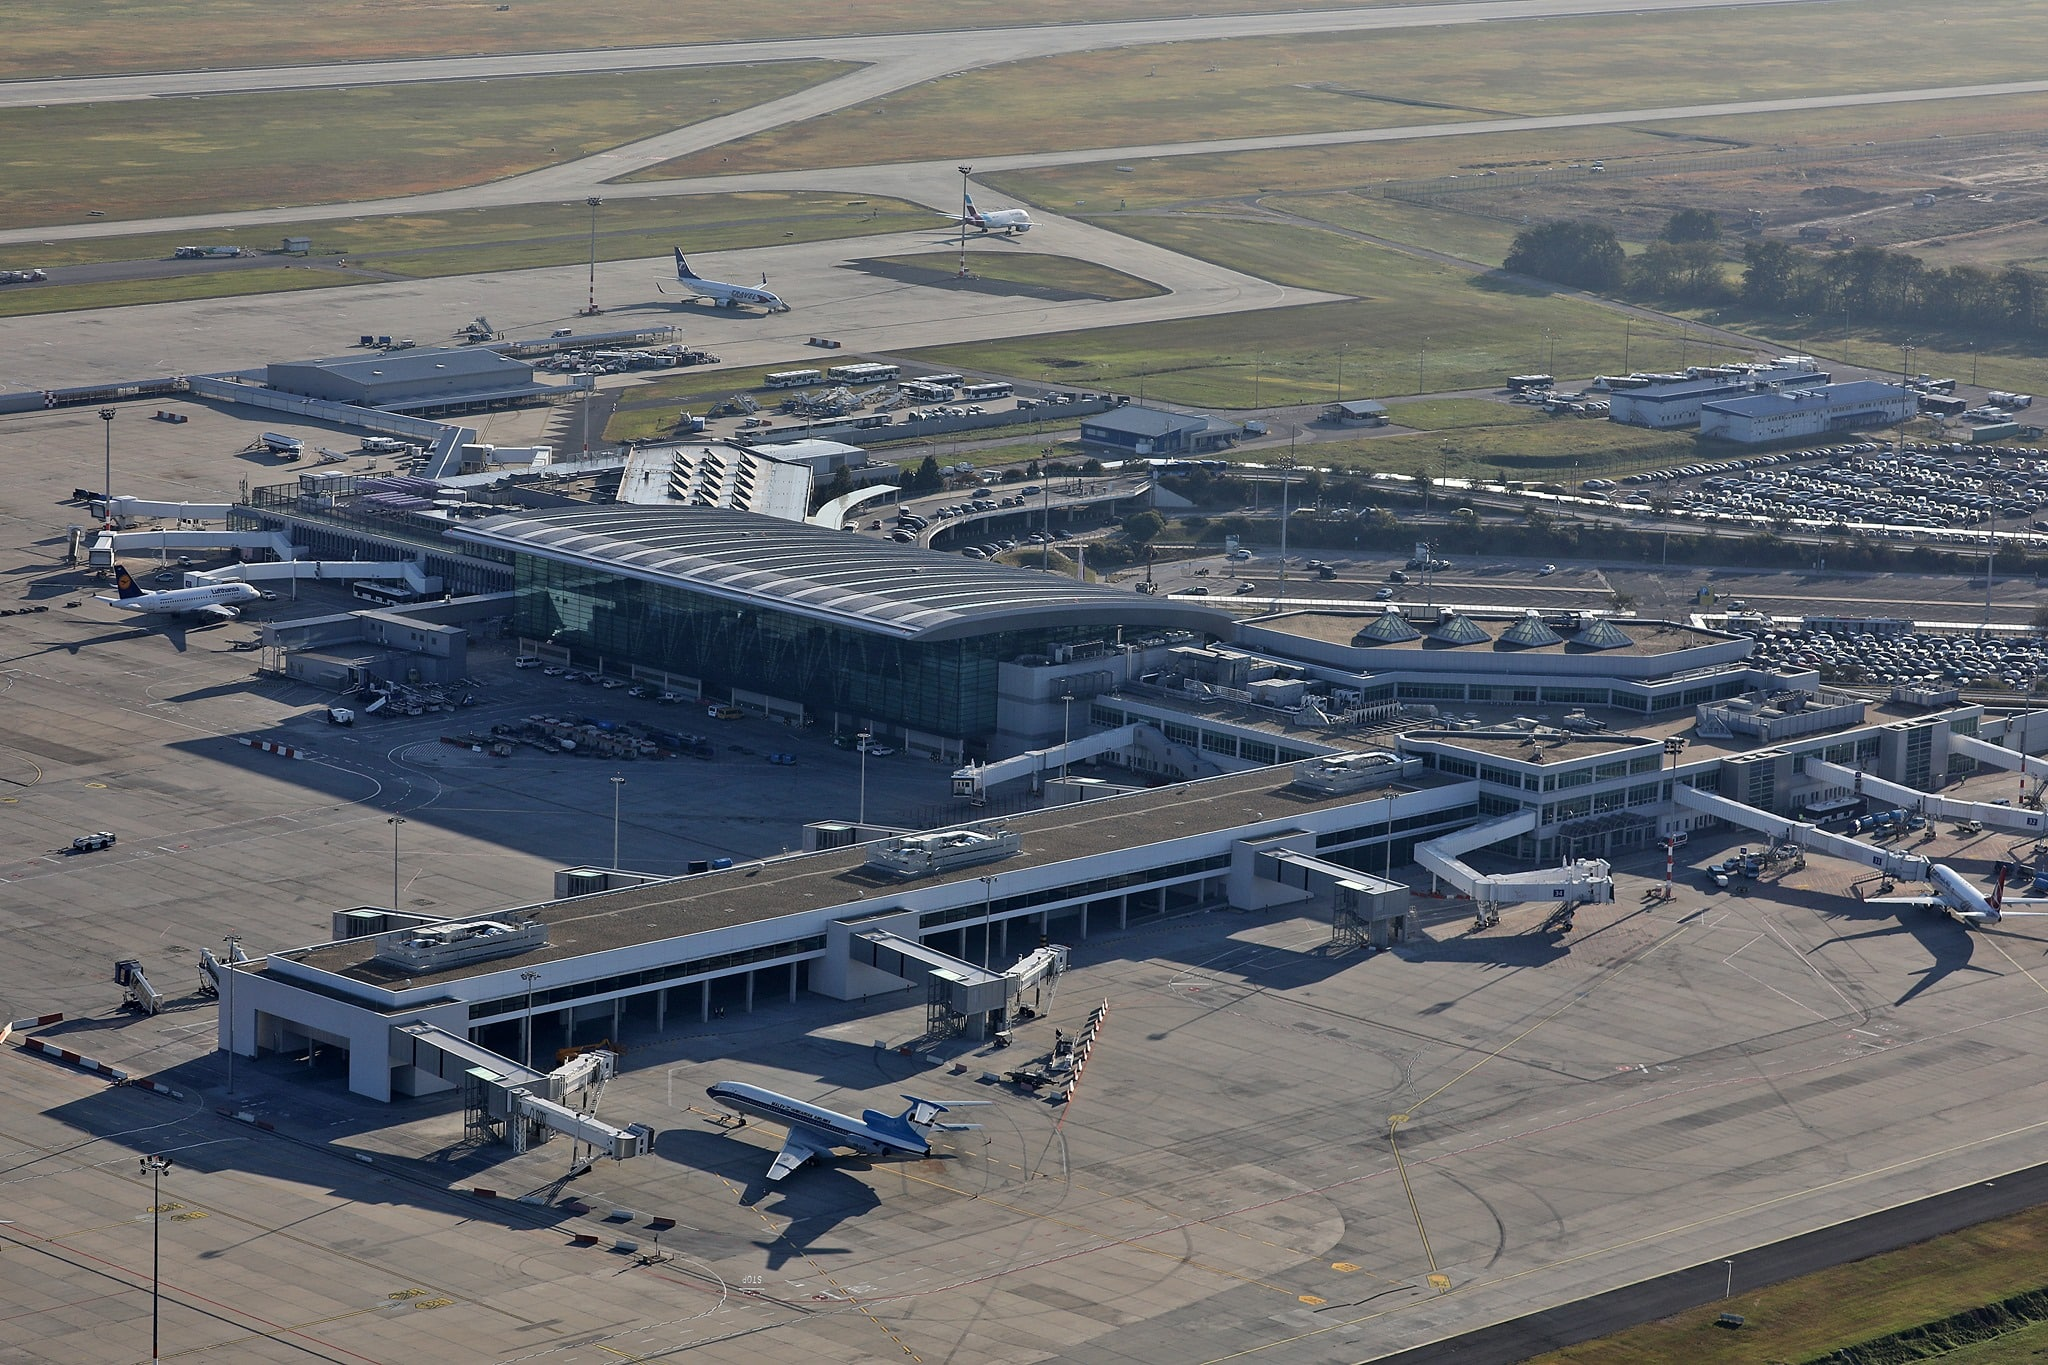 budapest airport gets brand-new terminalthe end of the